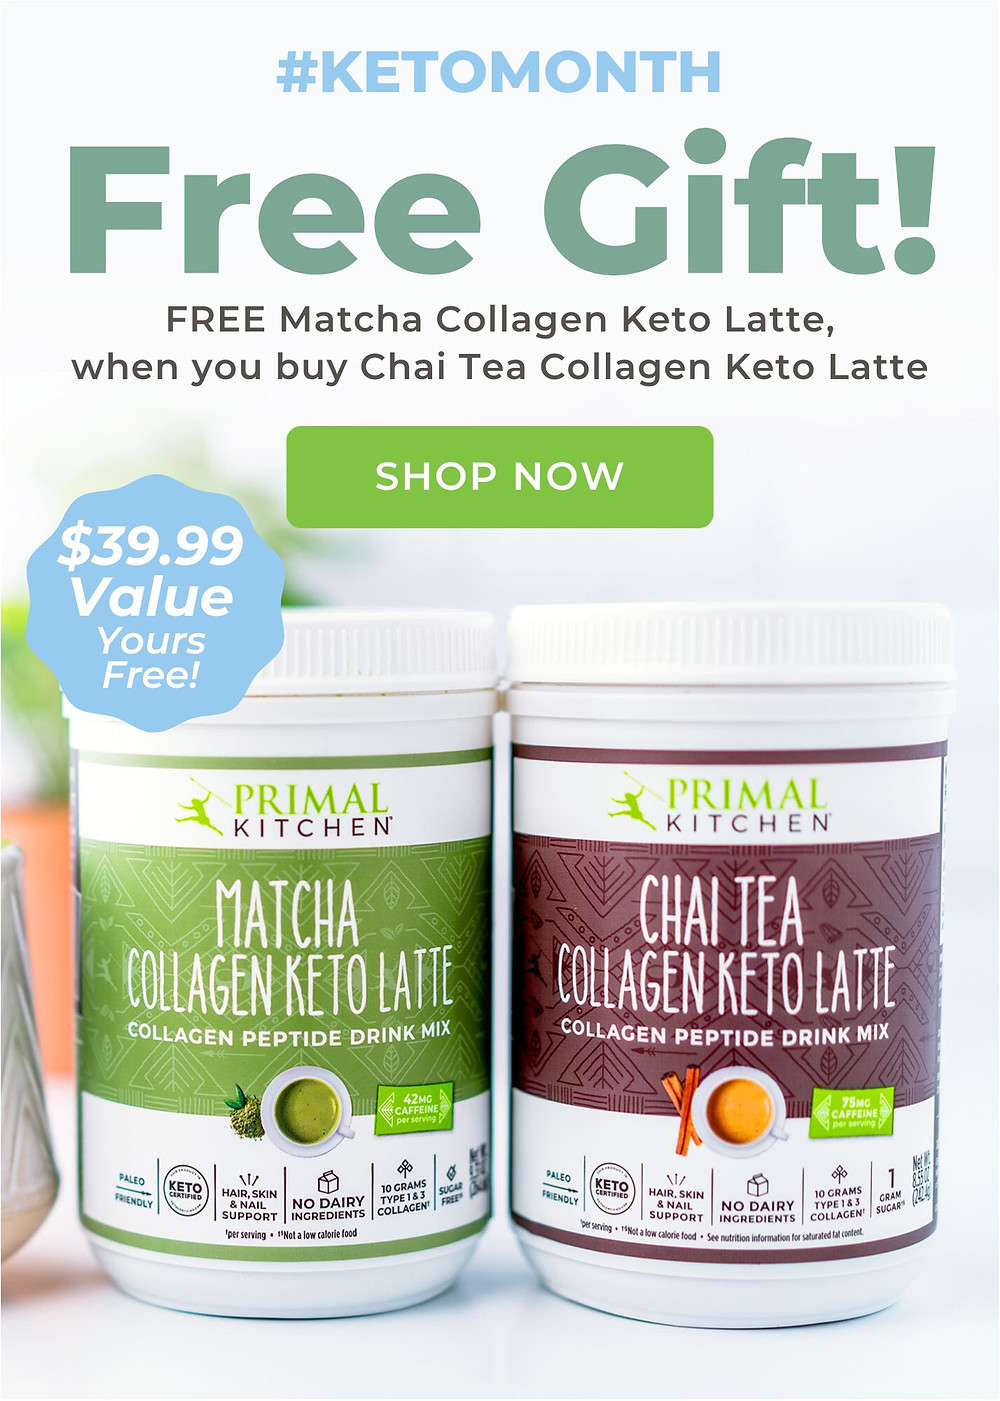 BOGO Free Gift Keto Month at Primal Kitchen Matcha Collagen Keto Latte with Chai Tea Keto Latte Ketogenic recipes